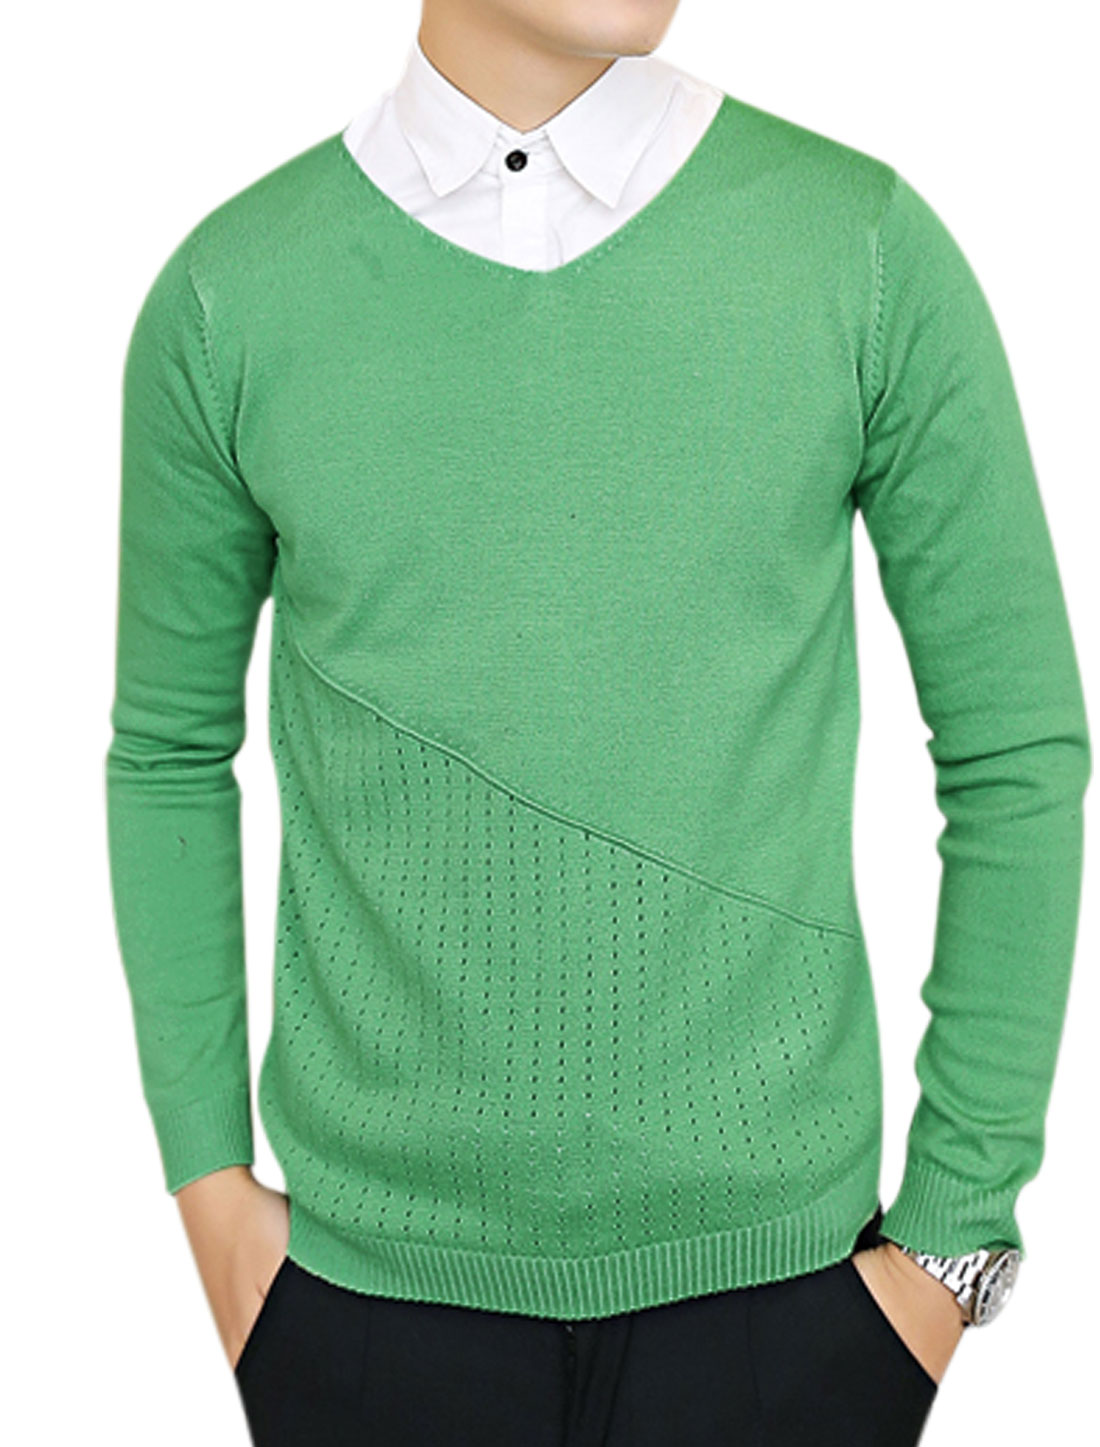 Pullover Long Sleeves Casual Green Sweater for Man S